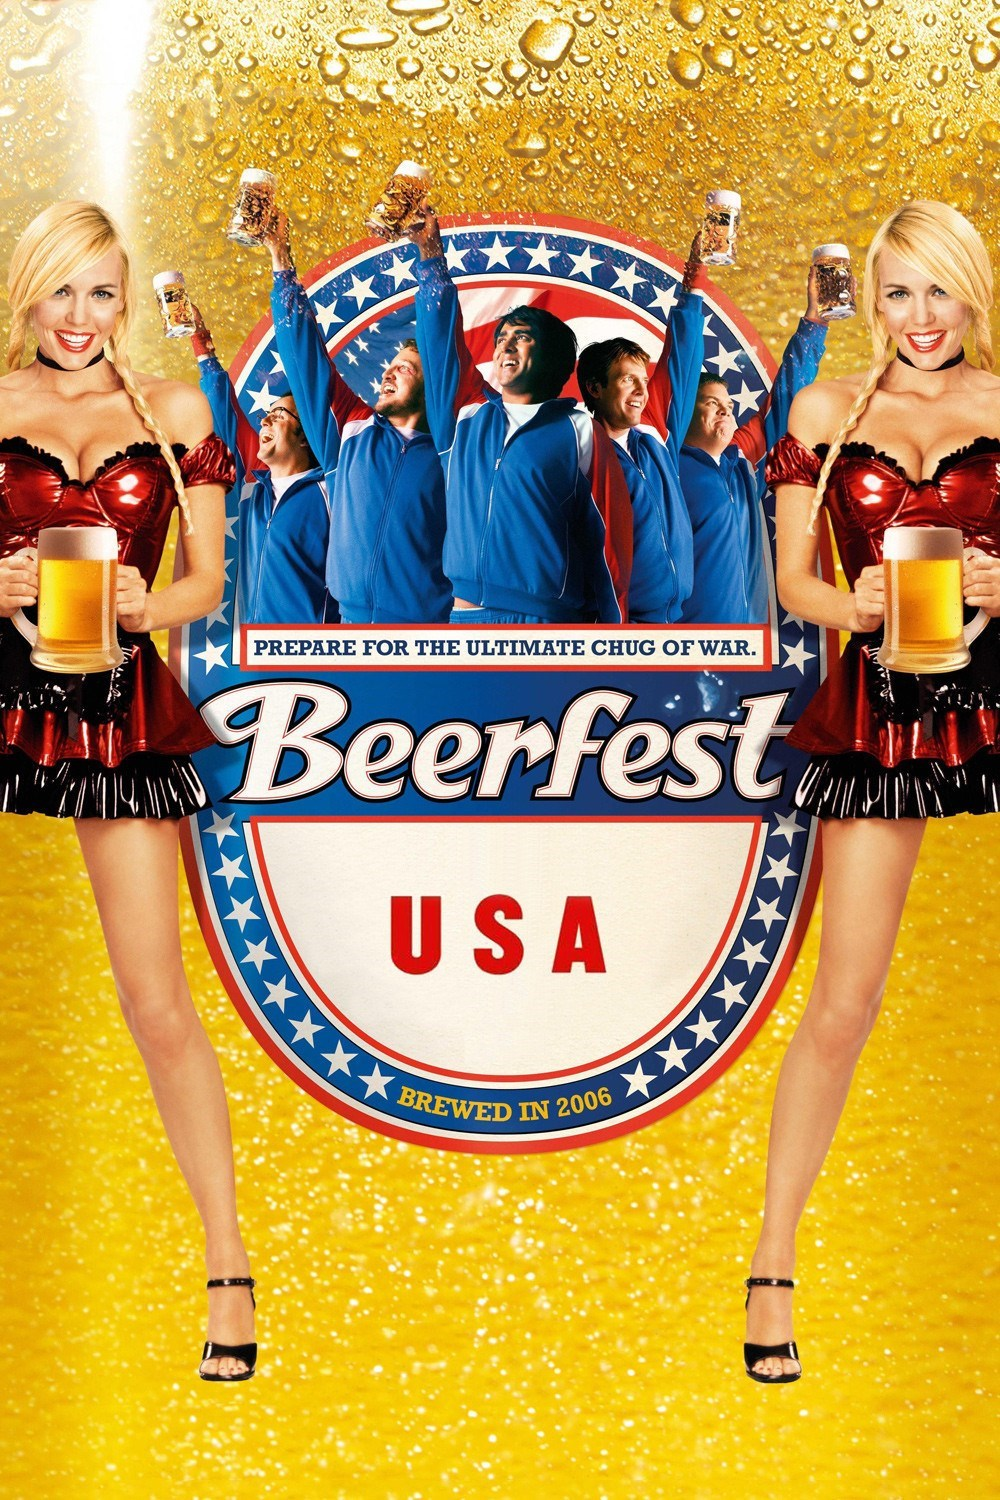 Beerfest HD wallpapers, Desktop wallpaper - most viewed